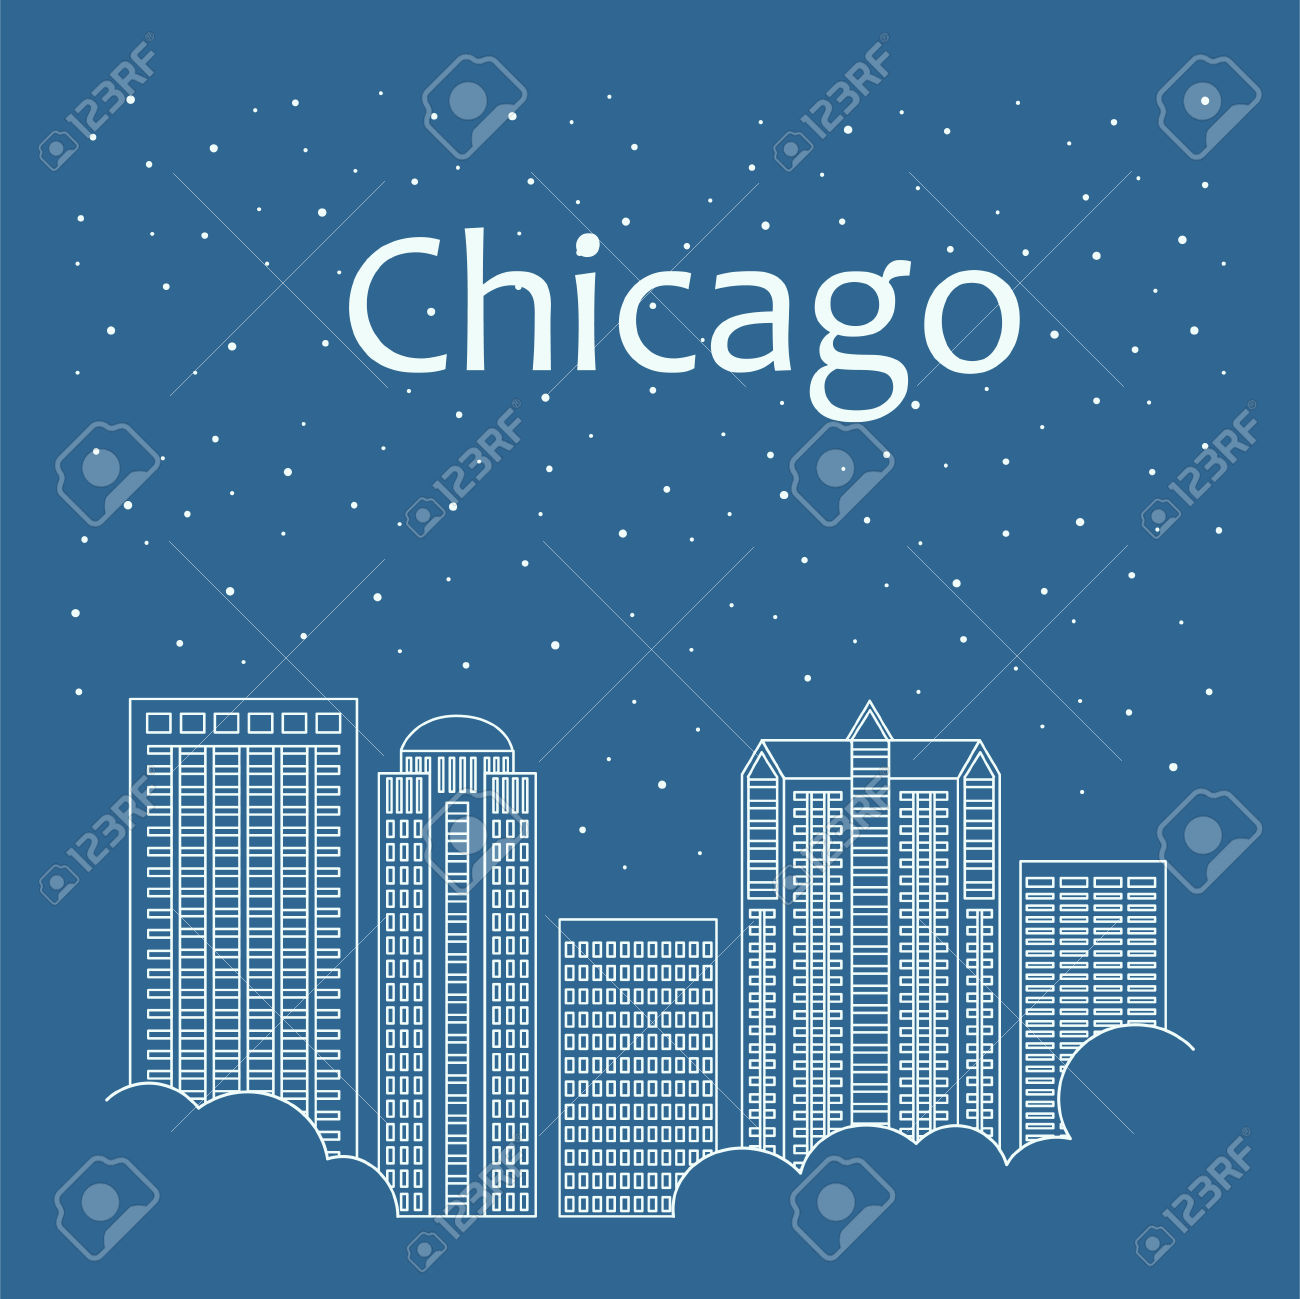 149 Chicago At Night Stock Vector Illustration And Royalty Free.